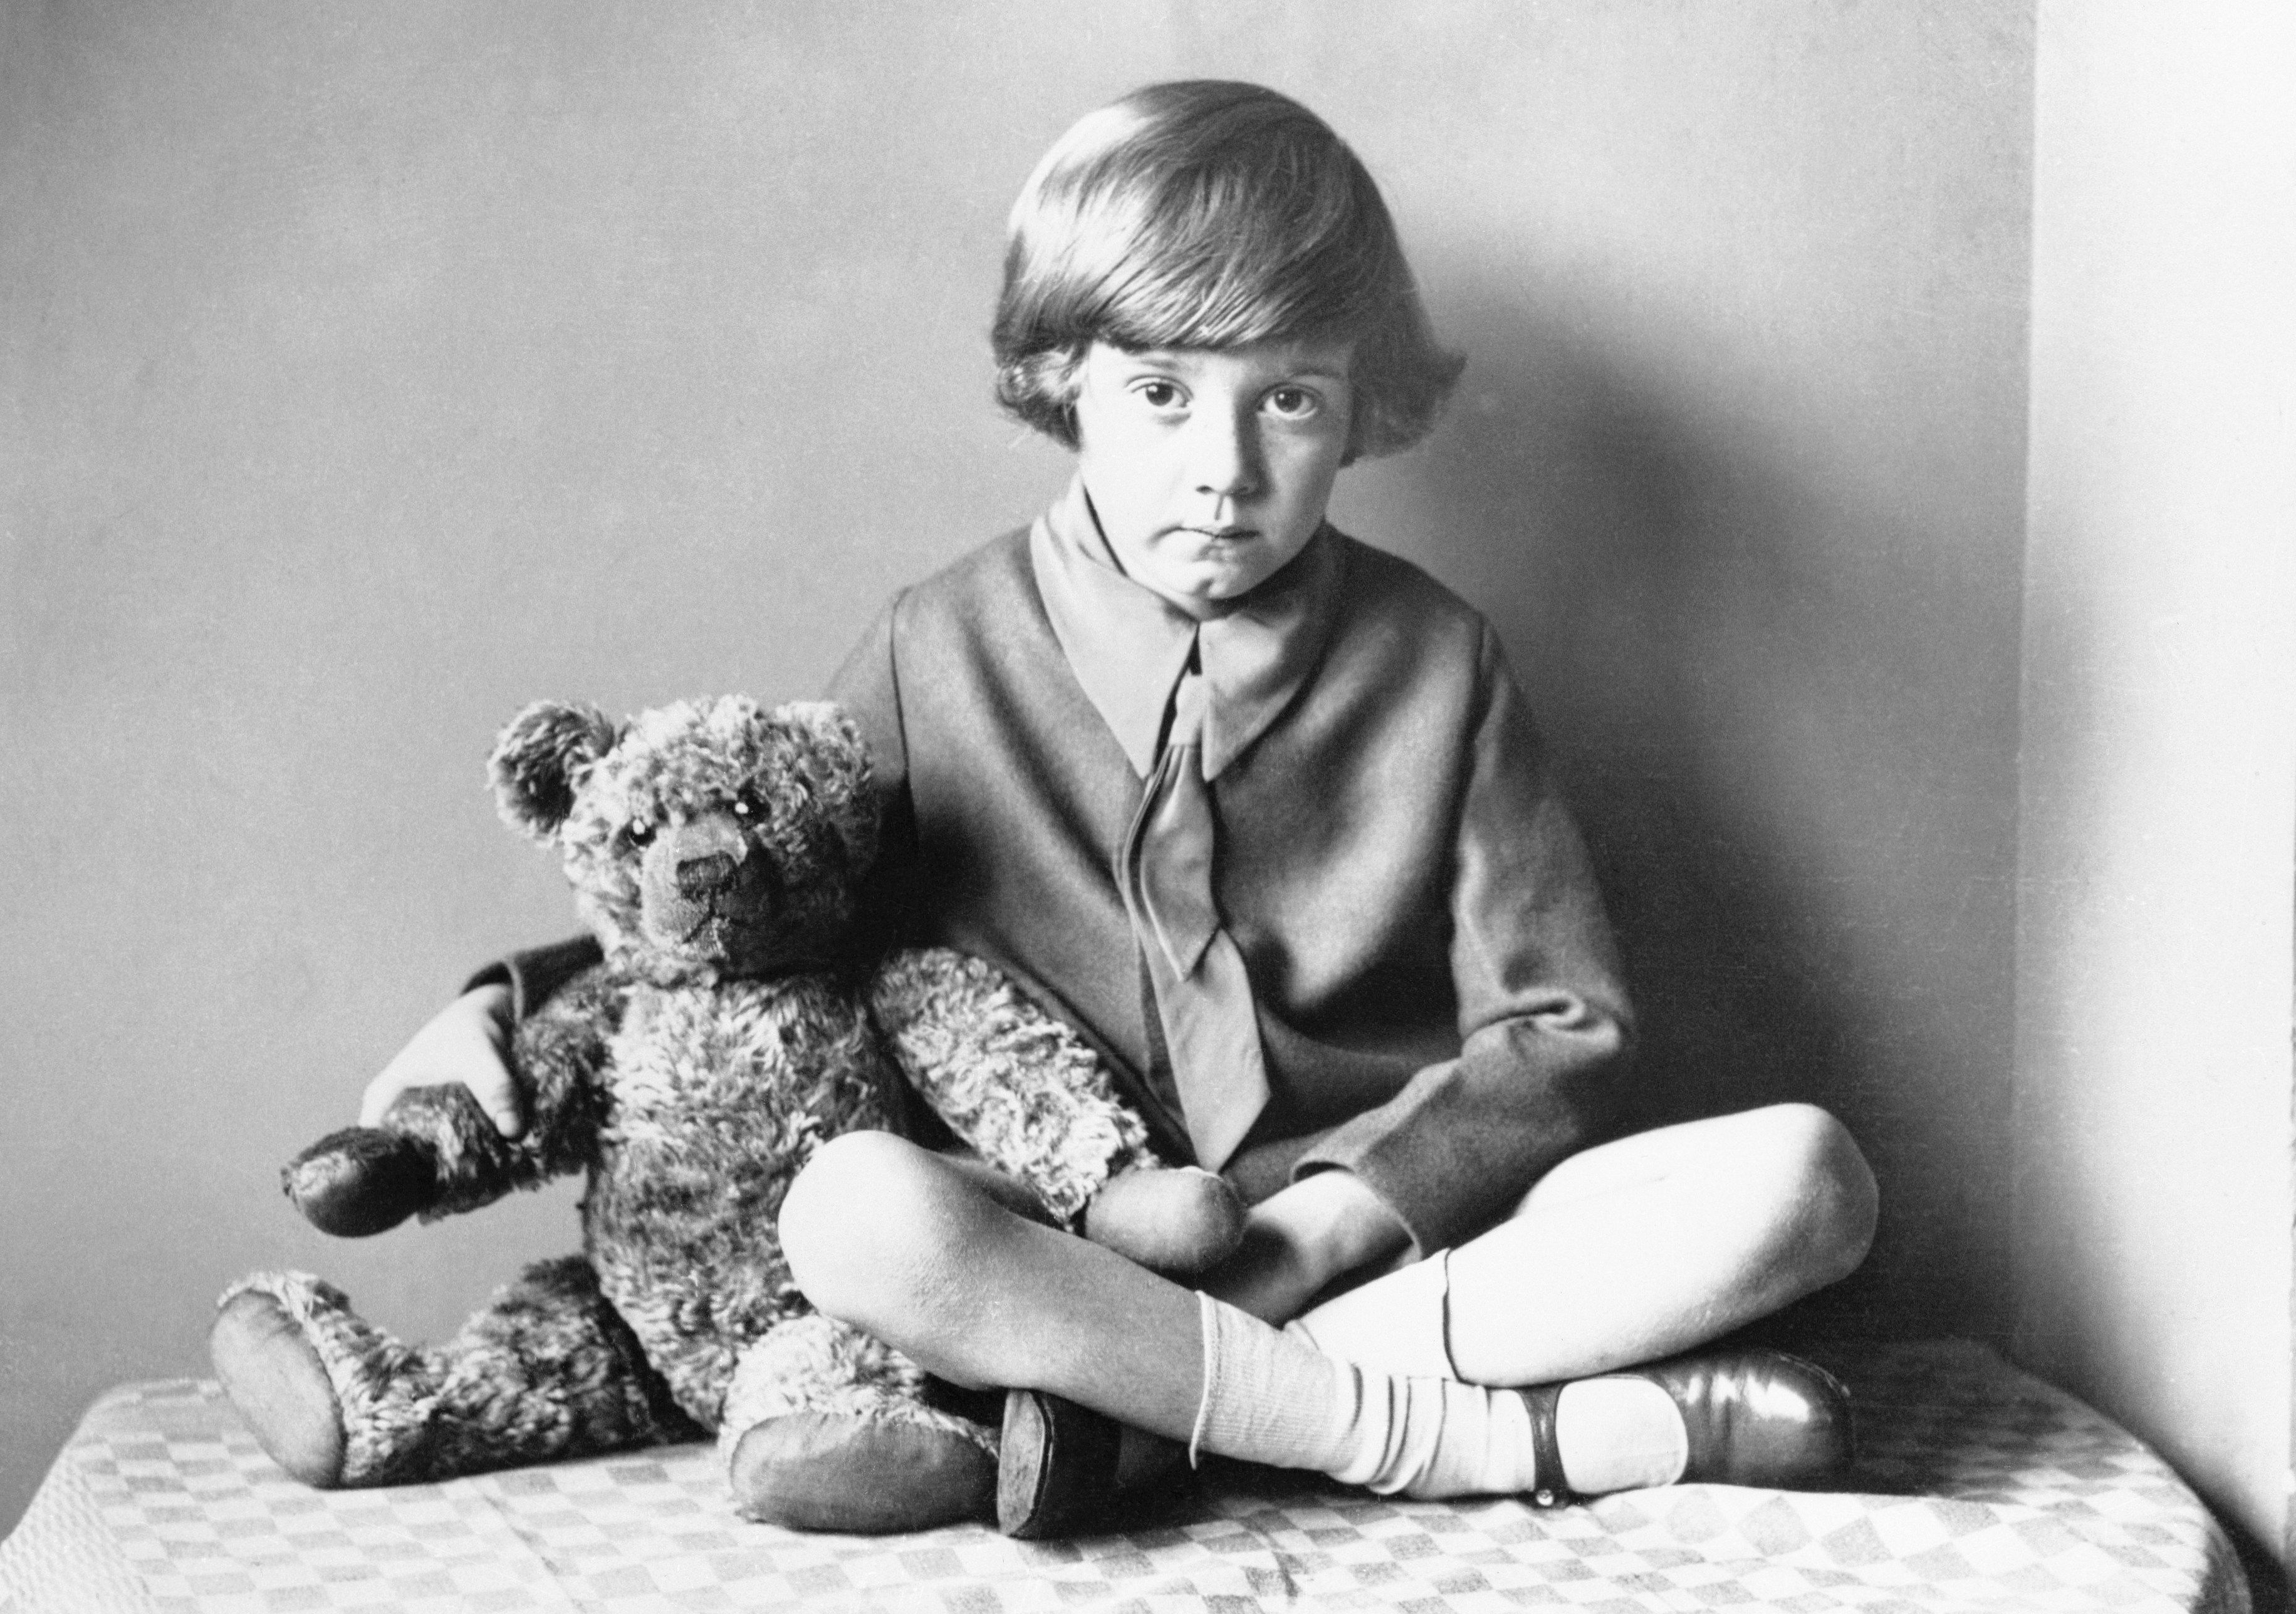 Winnie the Pooh Christopher Robin sitting at home with his teddy bear.